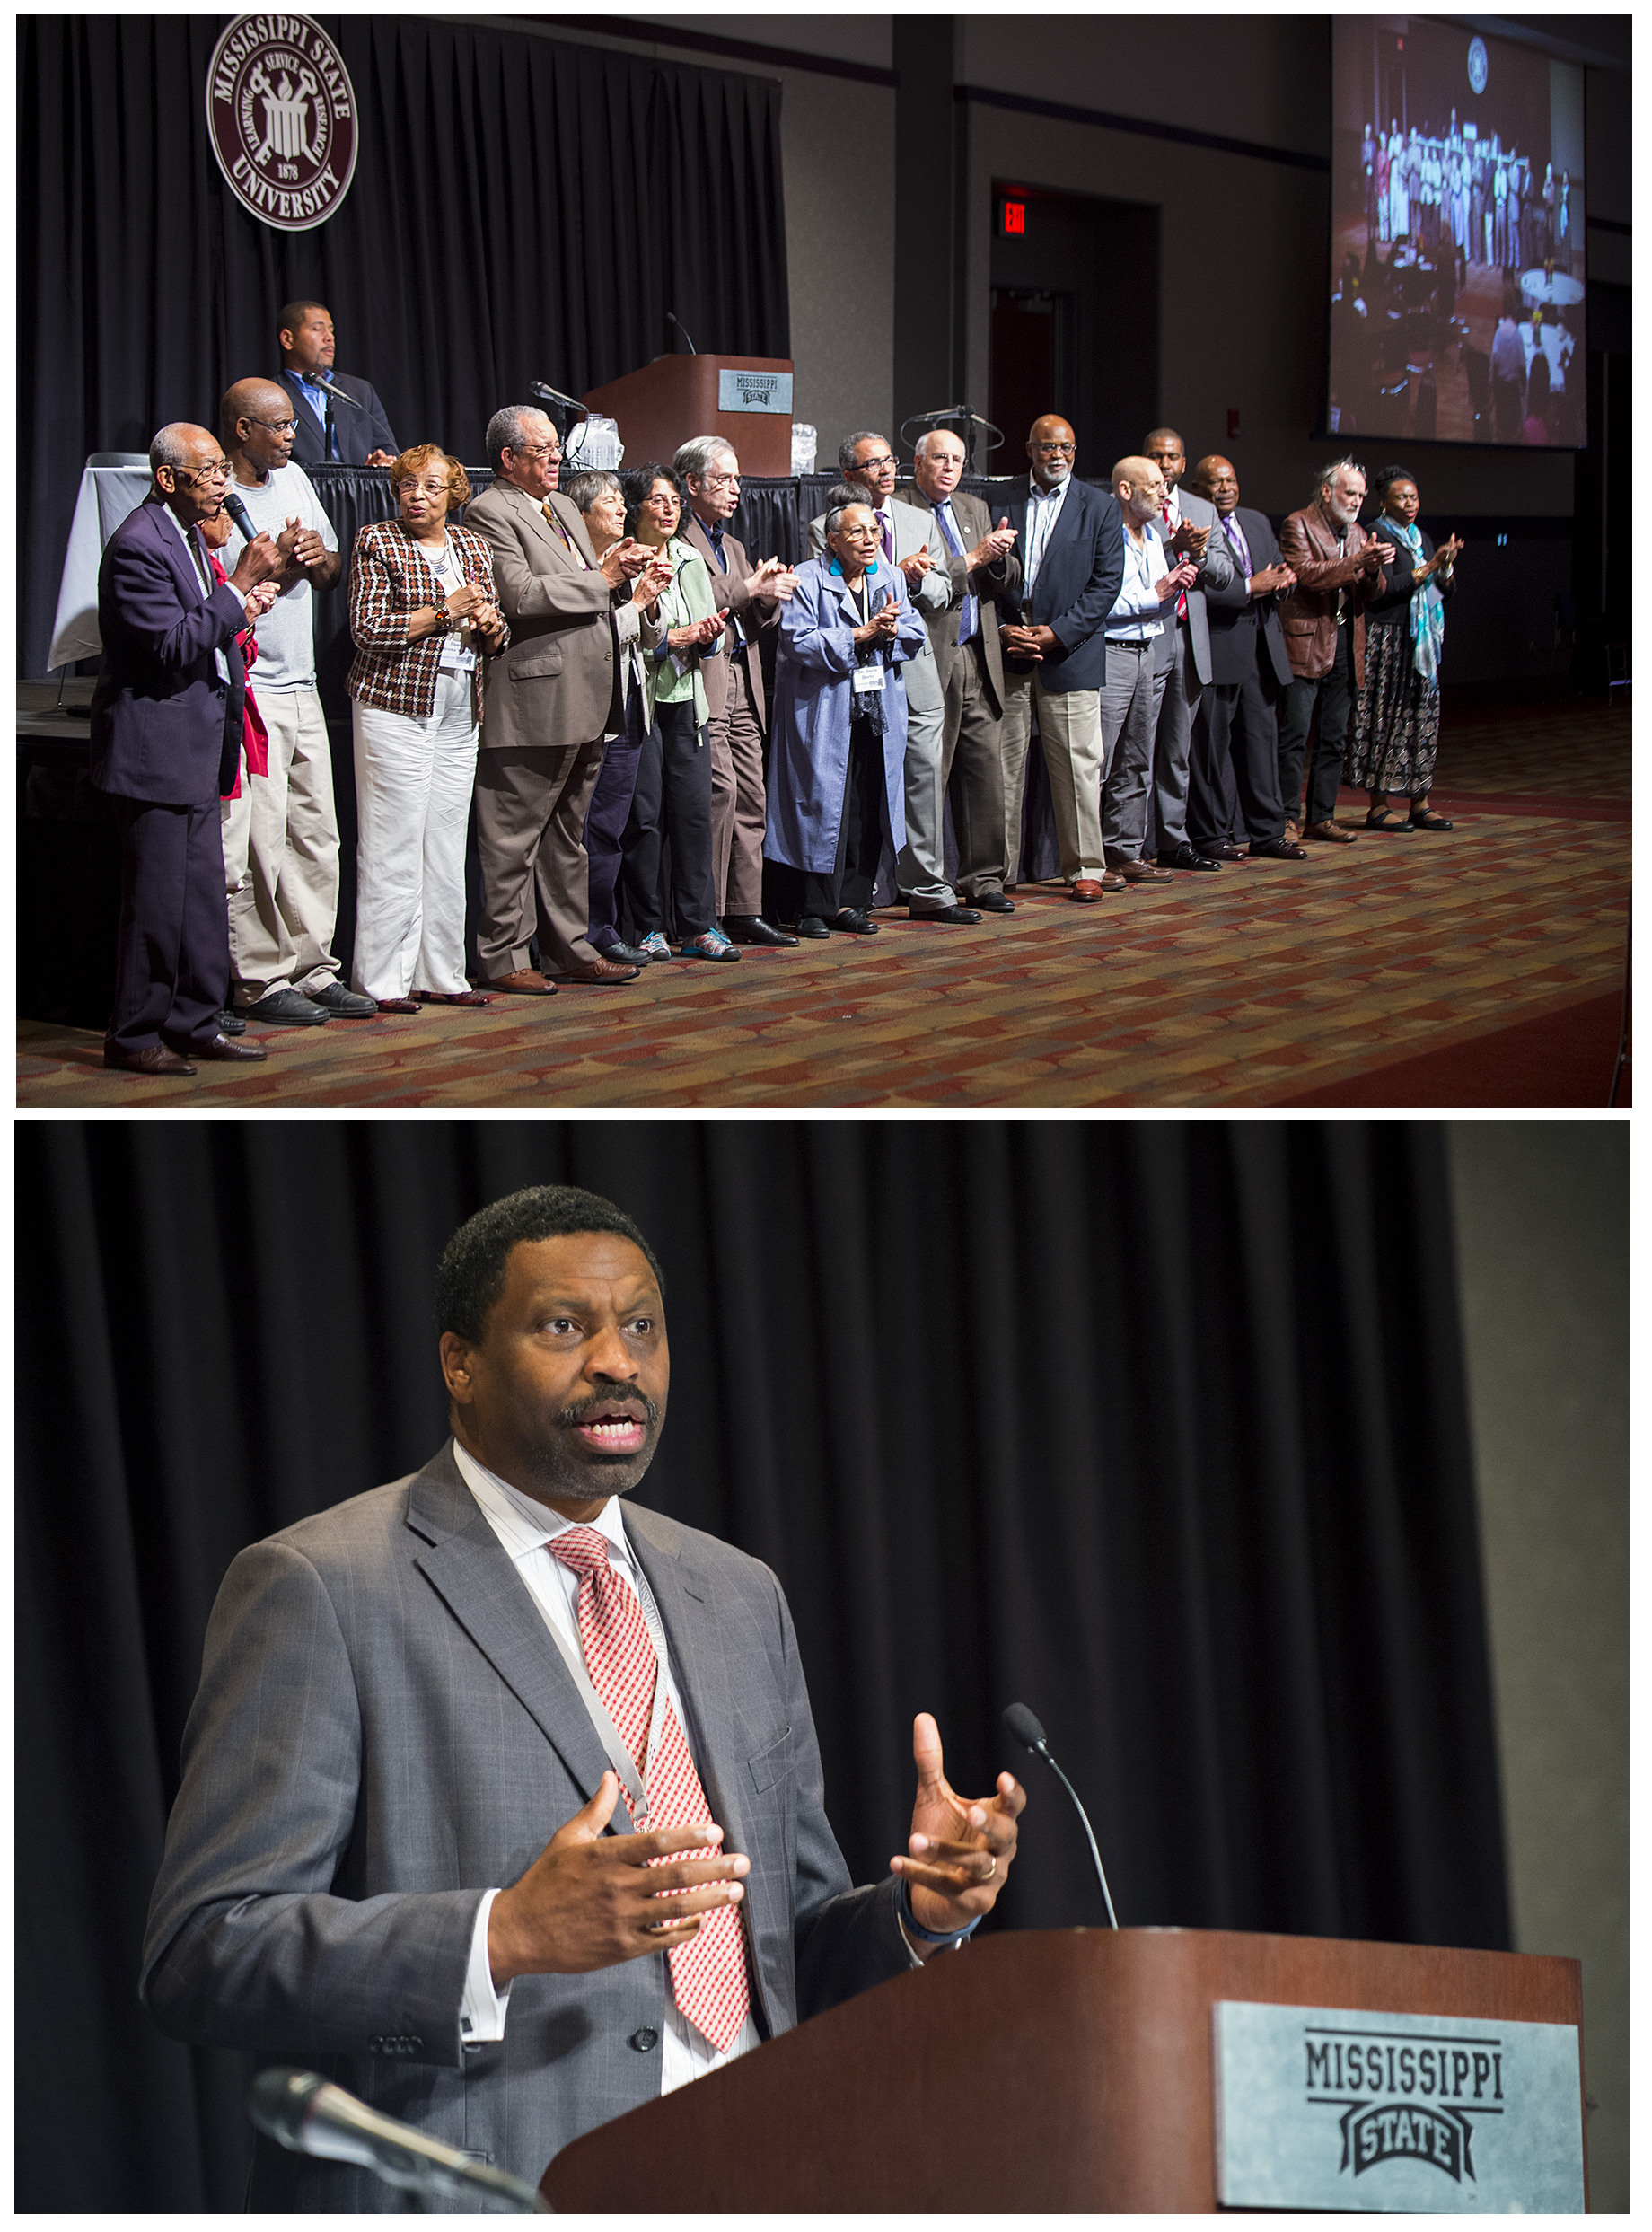 Top: Mississippi State University hosted Freedom Summer activists as part of the celebration of the movement's 50th anniversary at the &quot;Remembering Freedom Summer&quot; conference.<br /> Bottom: Mississippi NAACP President Derrick Johnson emphasized how the lessons of Freedom Summer continue to be relevant even 50 years later.